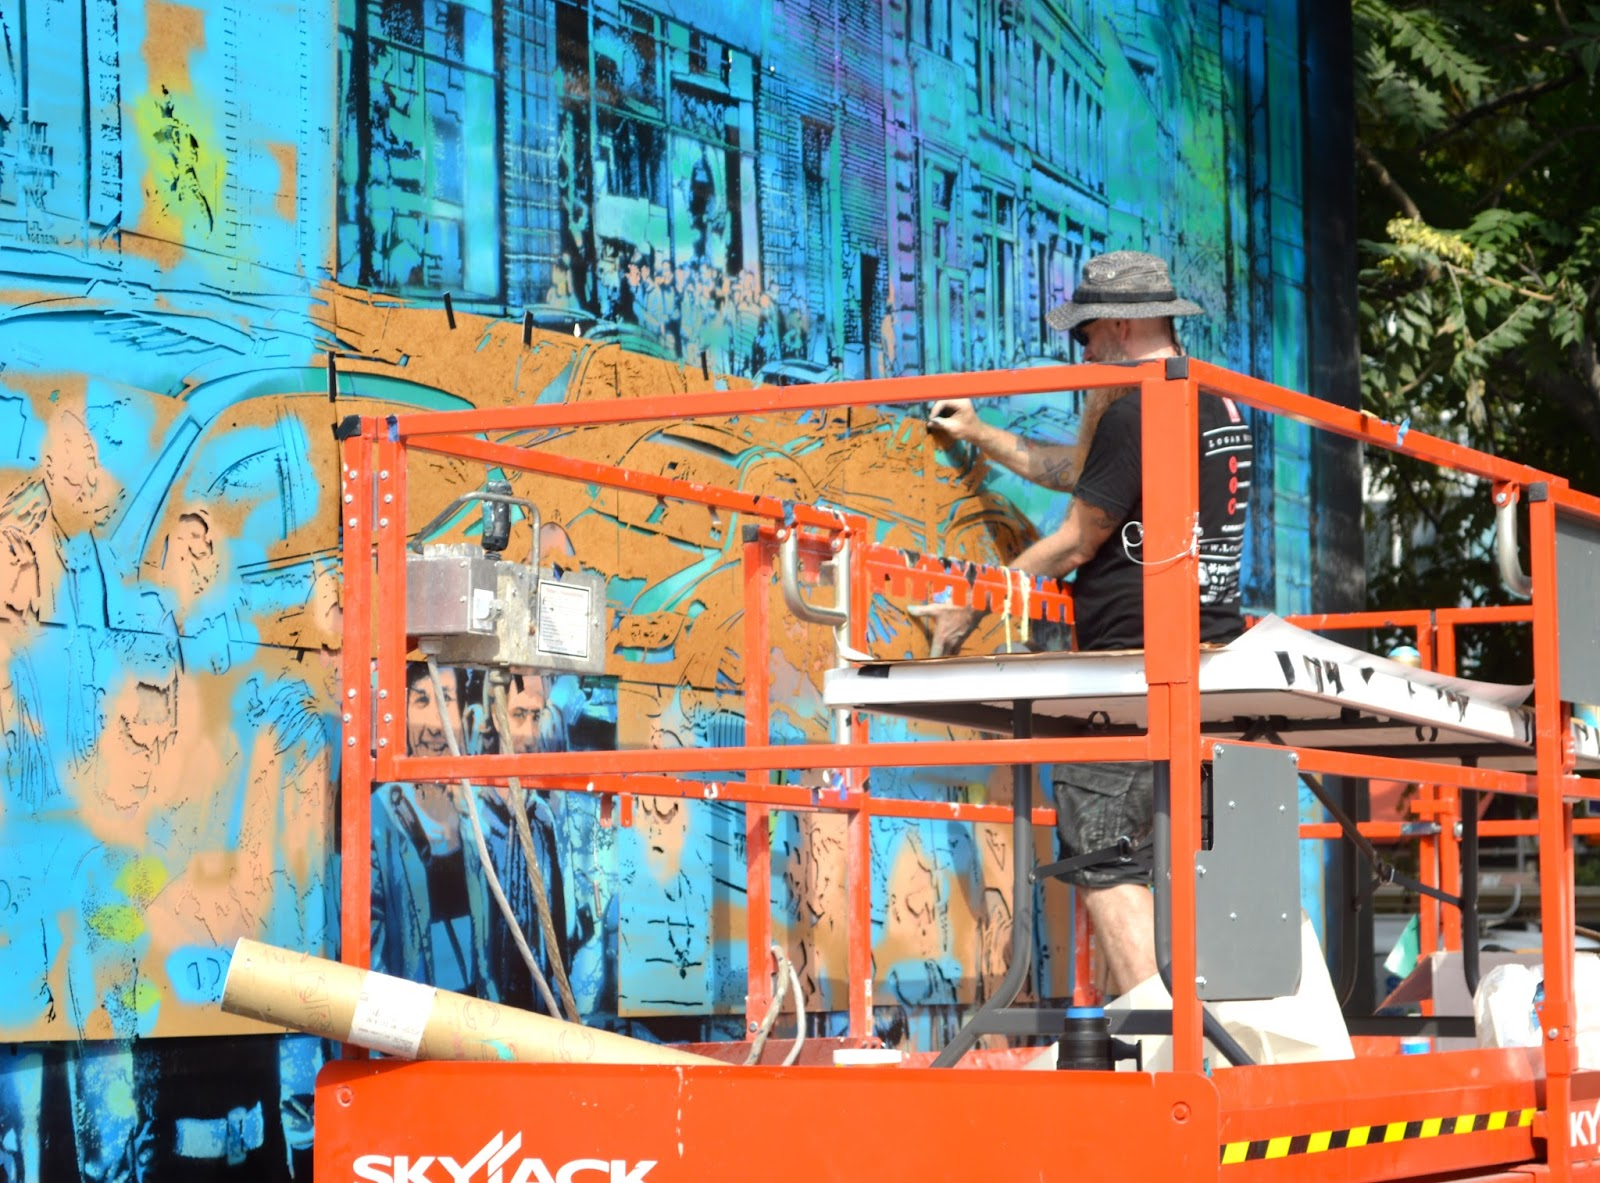 Best  stop work in the degree hot and humid weather a beautiful art wall that we hope could be a permanent fixture It certainly is New York City